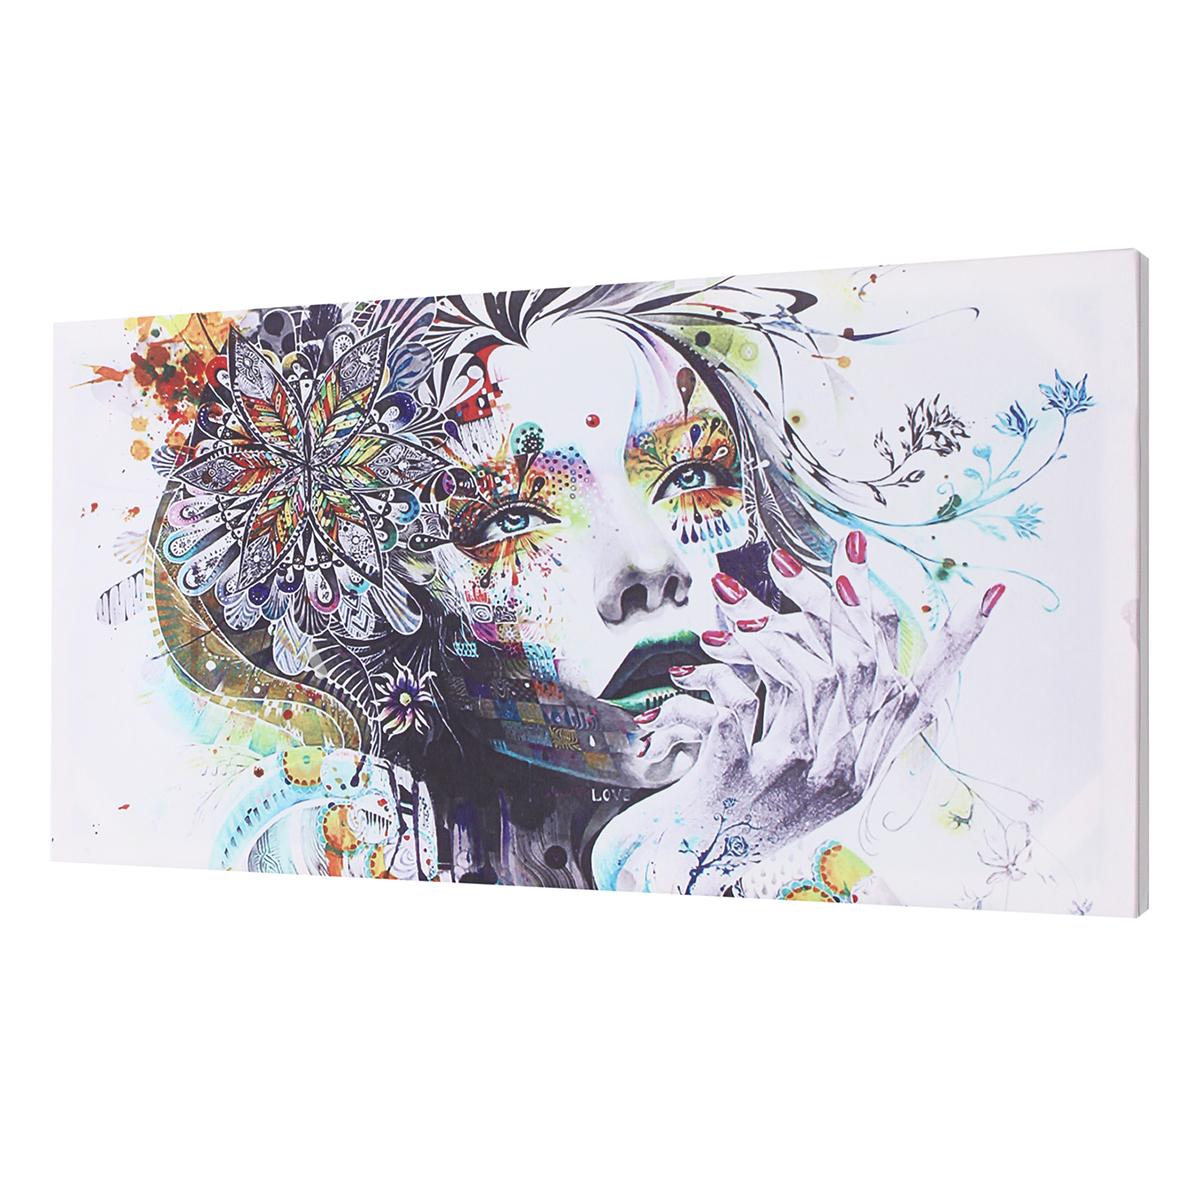 16-24-039-039-Abstract-Girl-Flower-Canvas-Print-Painting-Wall-Pictures-Framed-Unframed